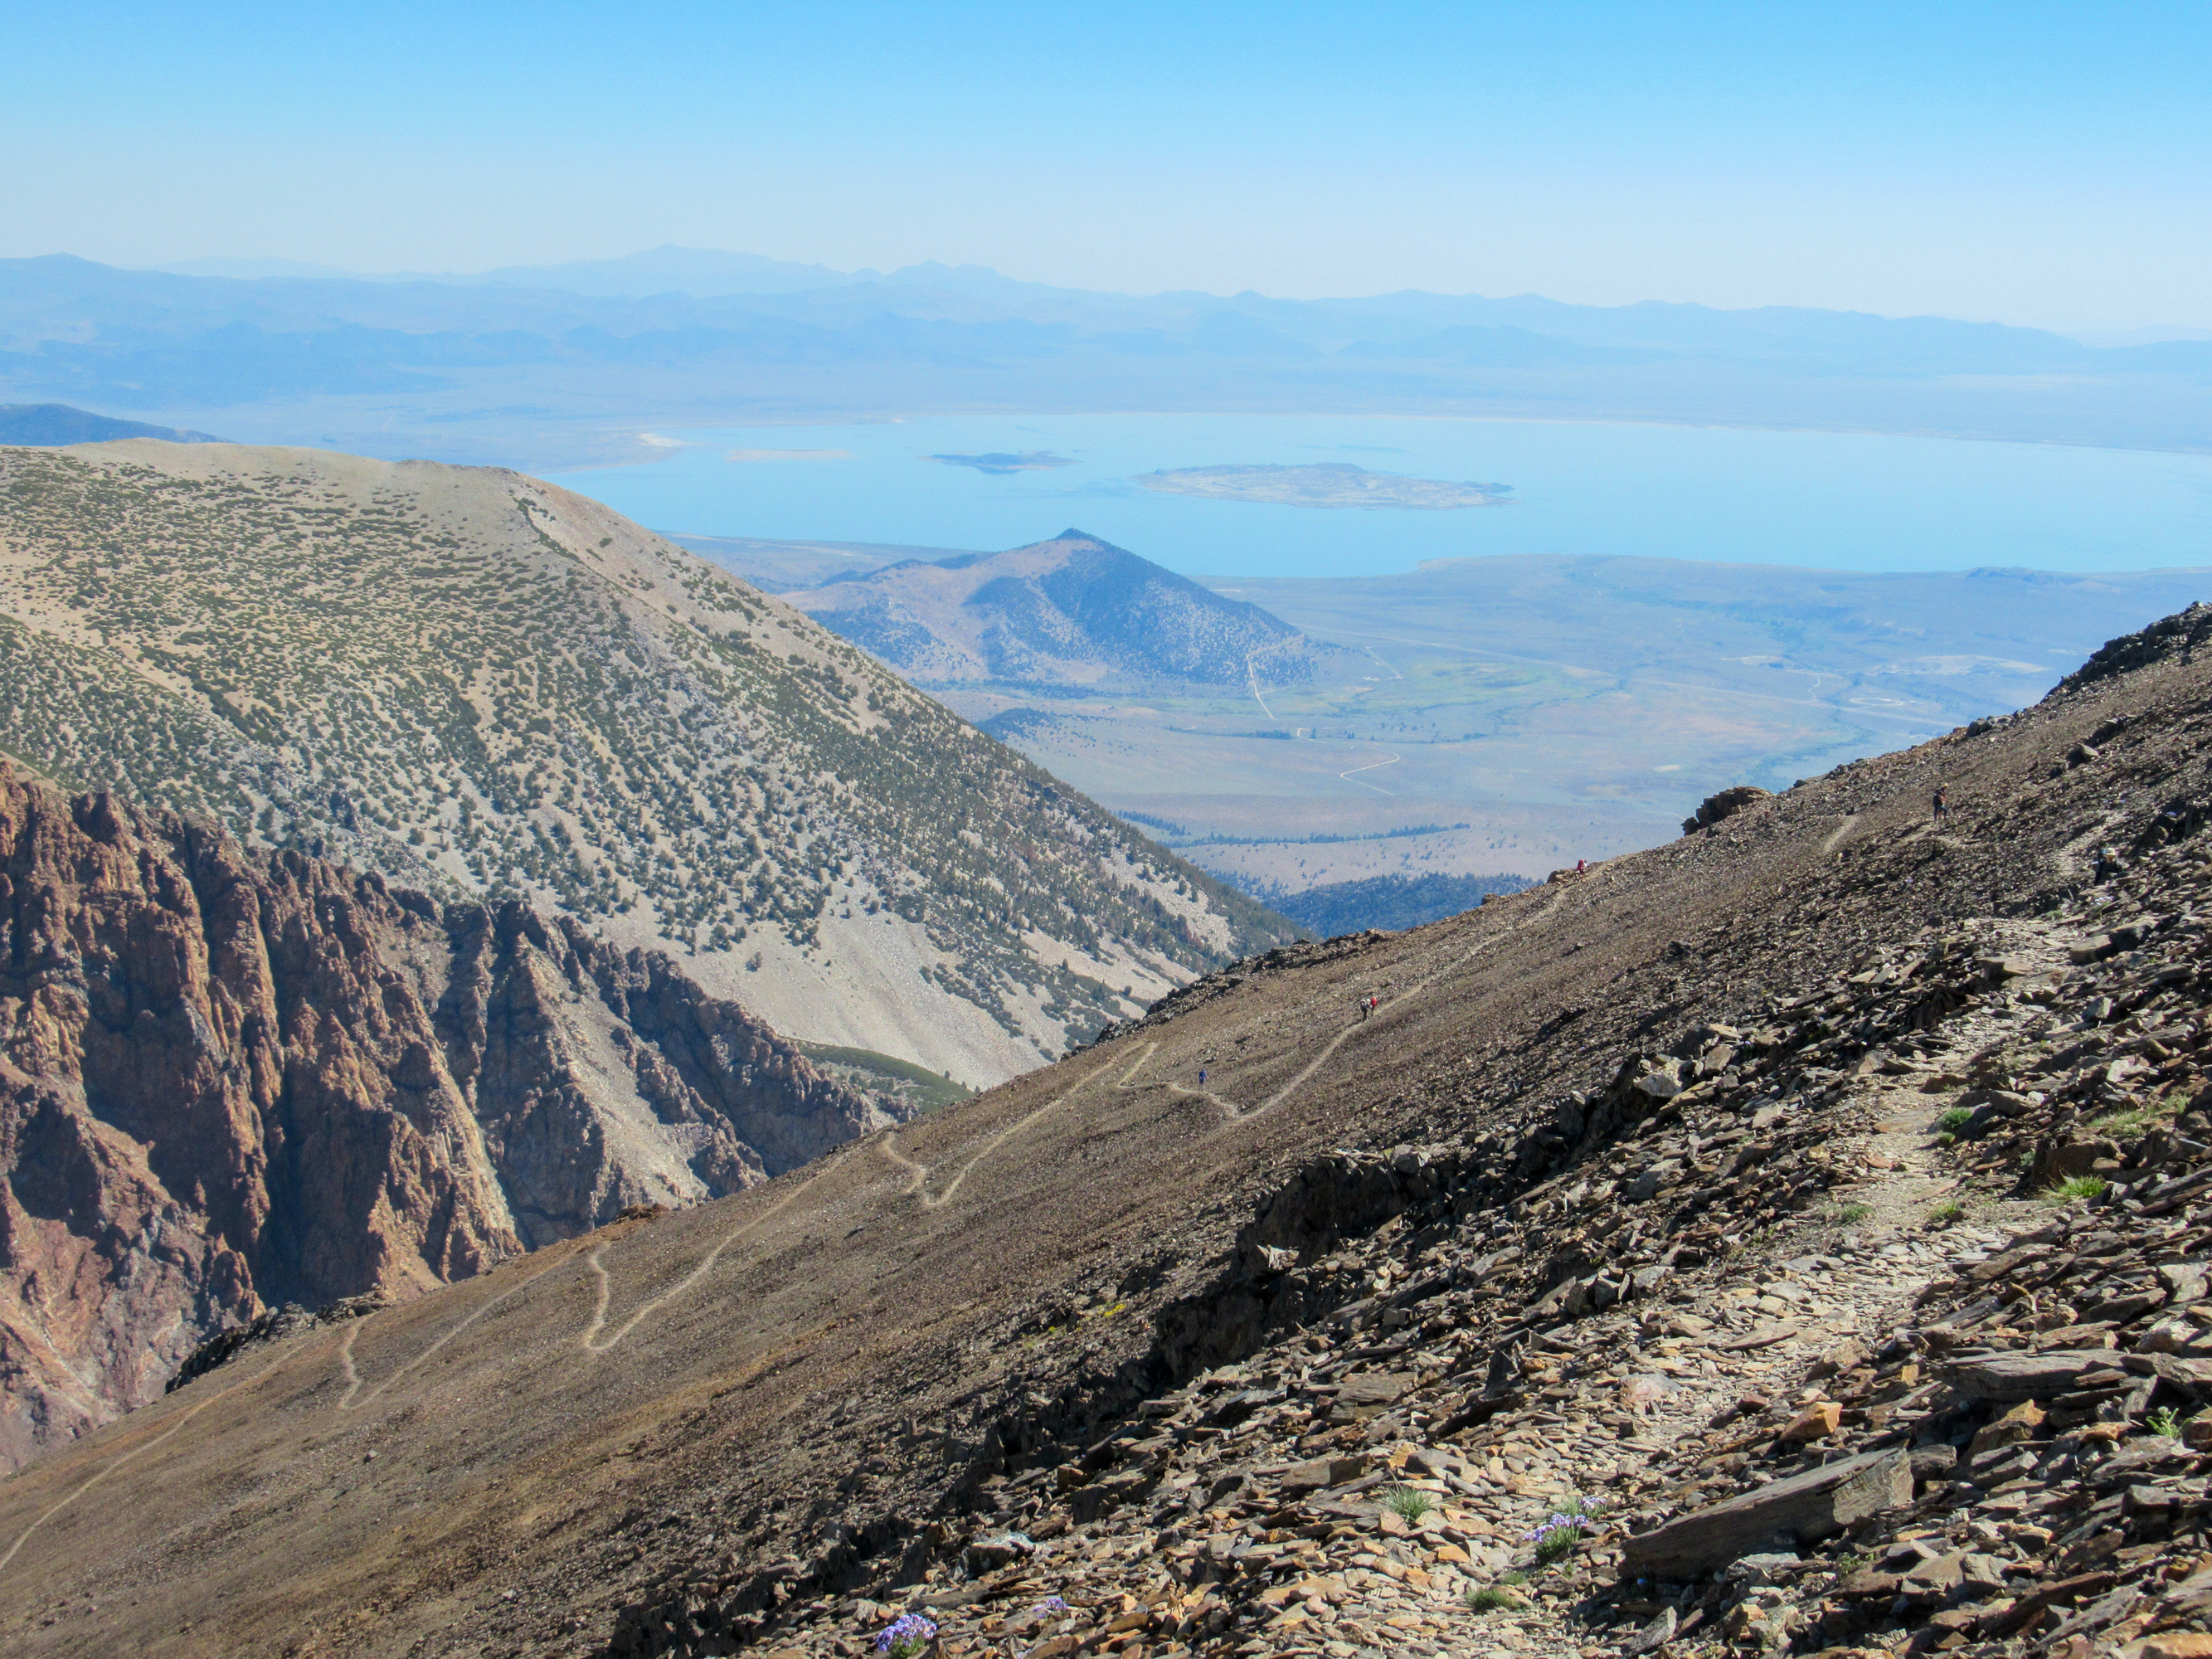 The top of Koip Pass looking east towards Mono Lake.